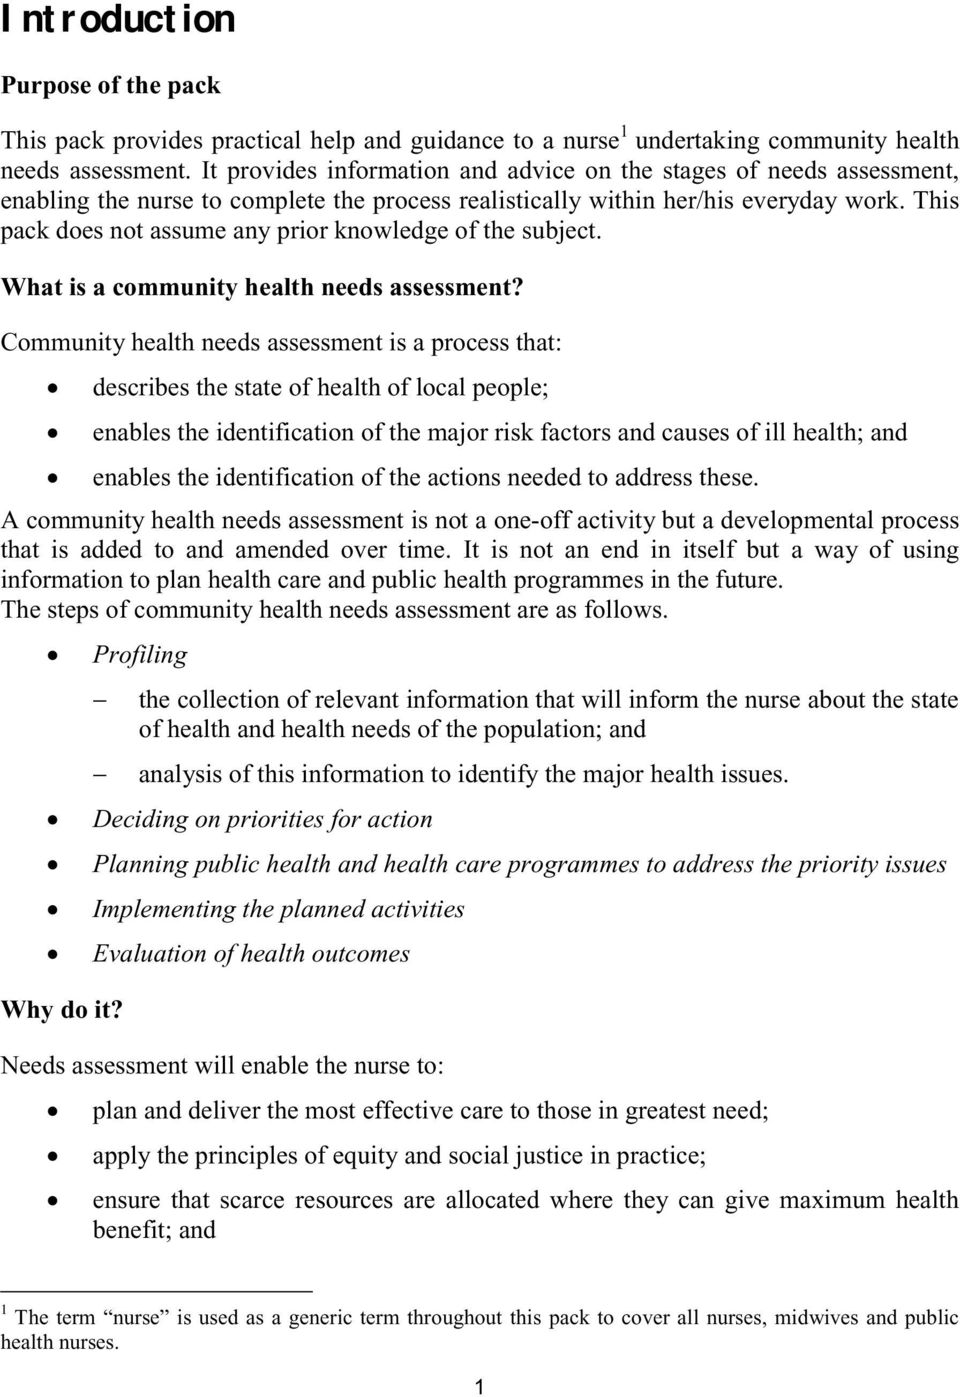 This pack does not assume any prior knowledge of the subject. What is a community health needs assessment?